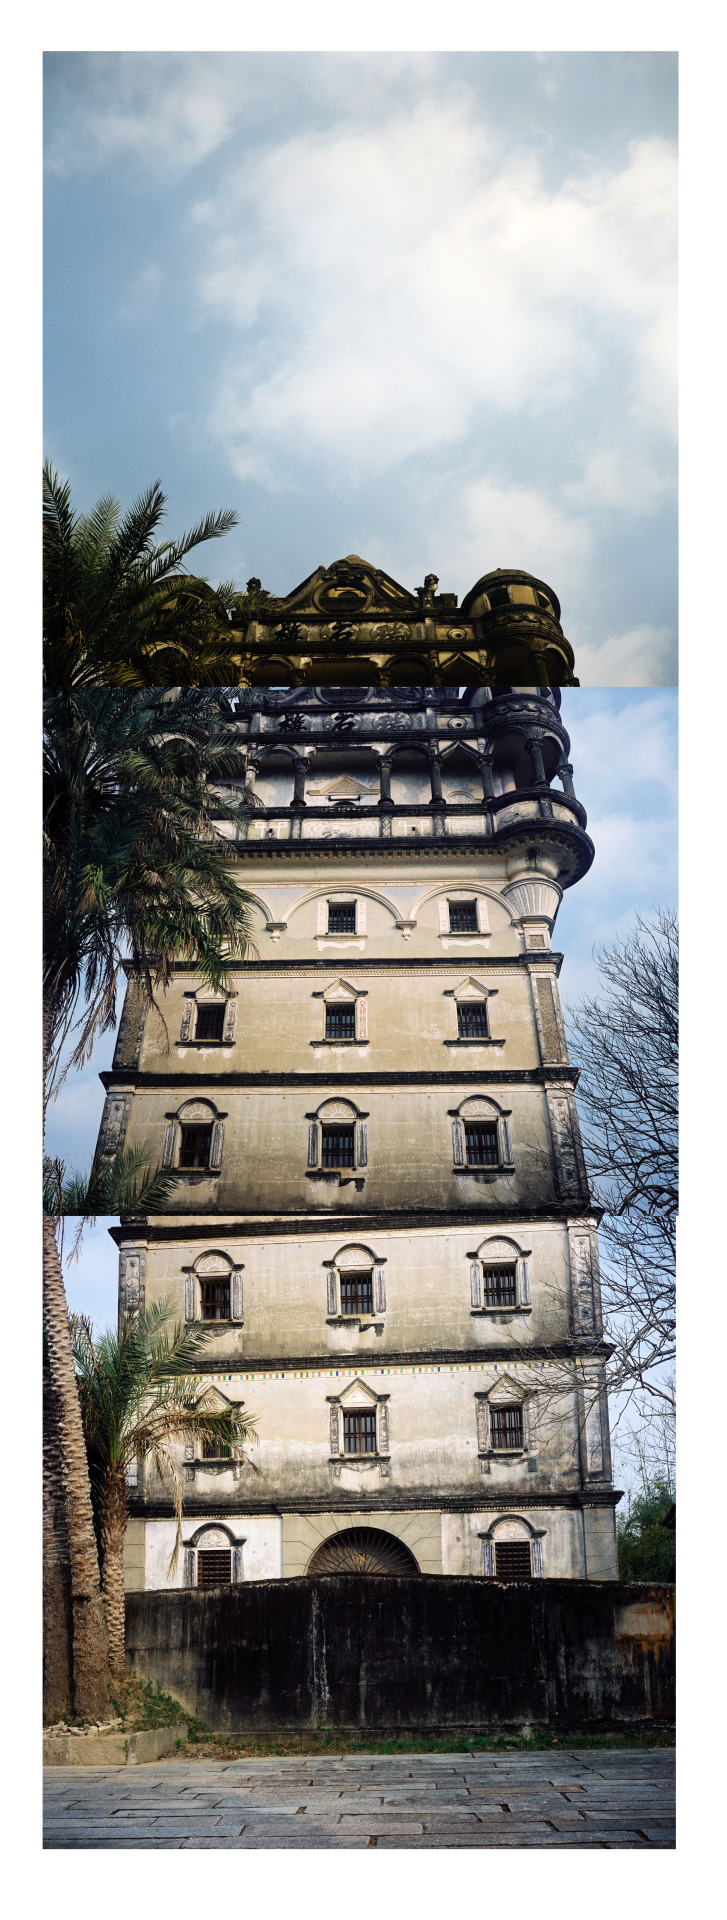 Kaiping, tower collage.